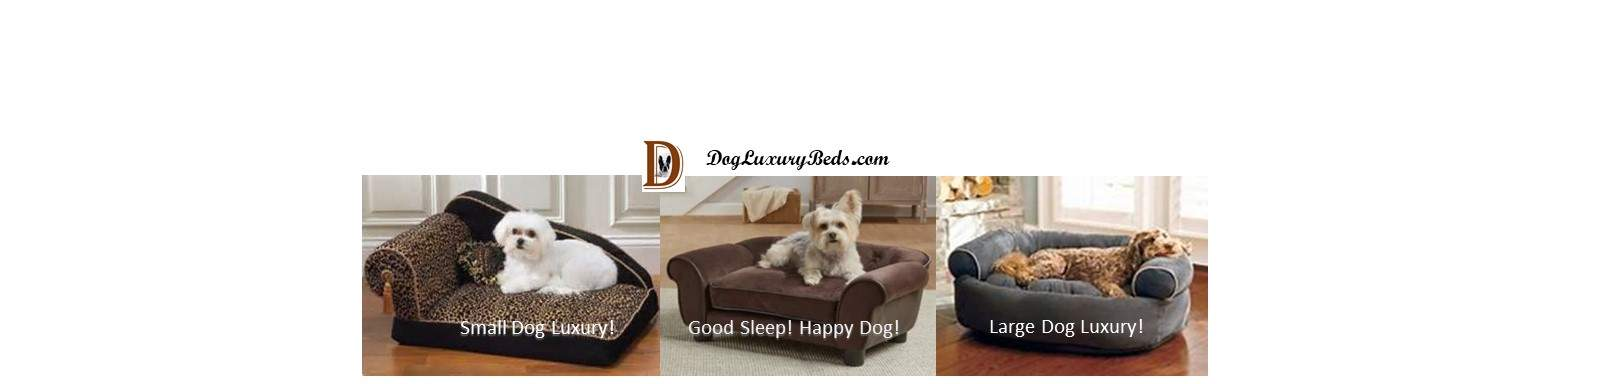 Dog Luxury Beds .com Give Your Dog A Restful Sleep